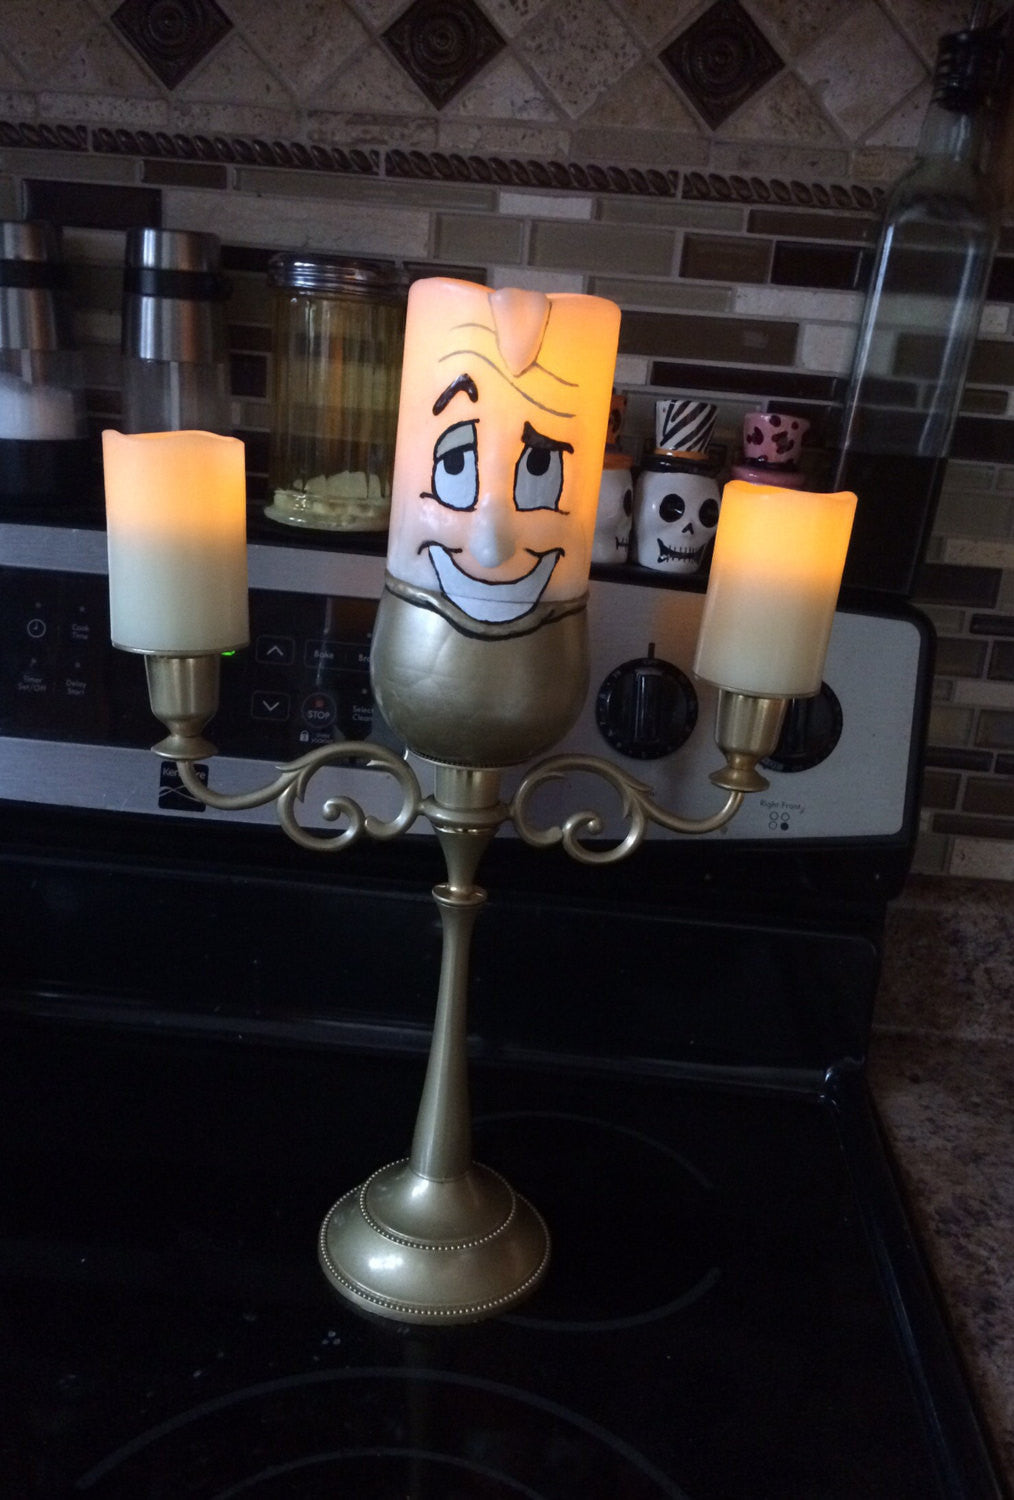 SALE!!! Lumiere Beauty and the Beast LED Candelabra Replica Figure Light-Up Candle Stick Holder Sculpture Prop Decor